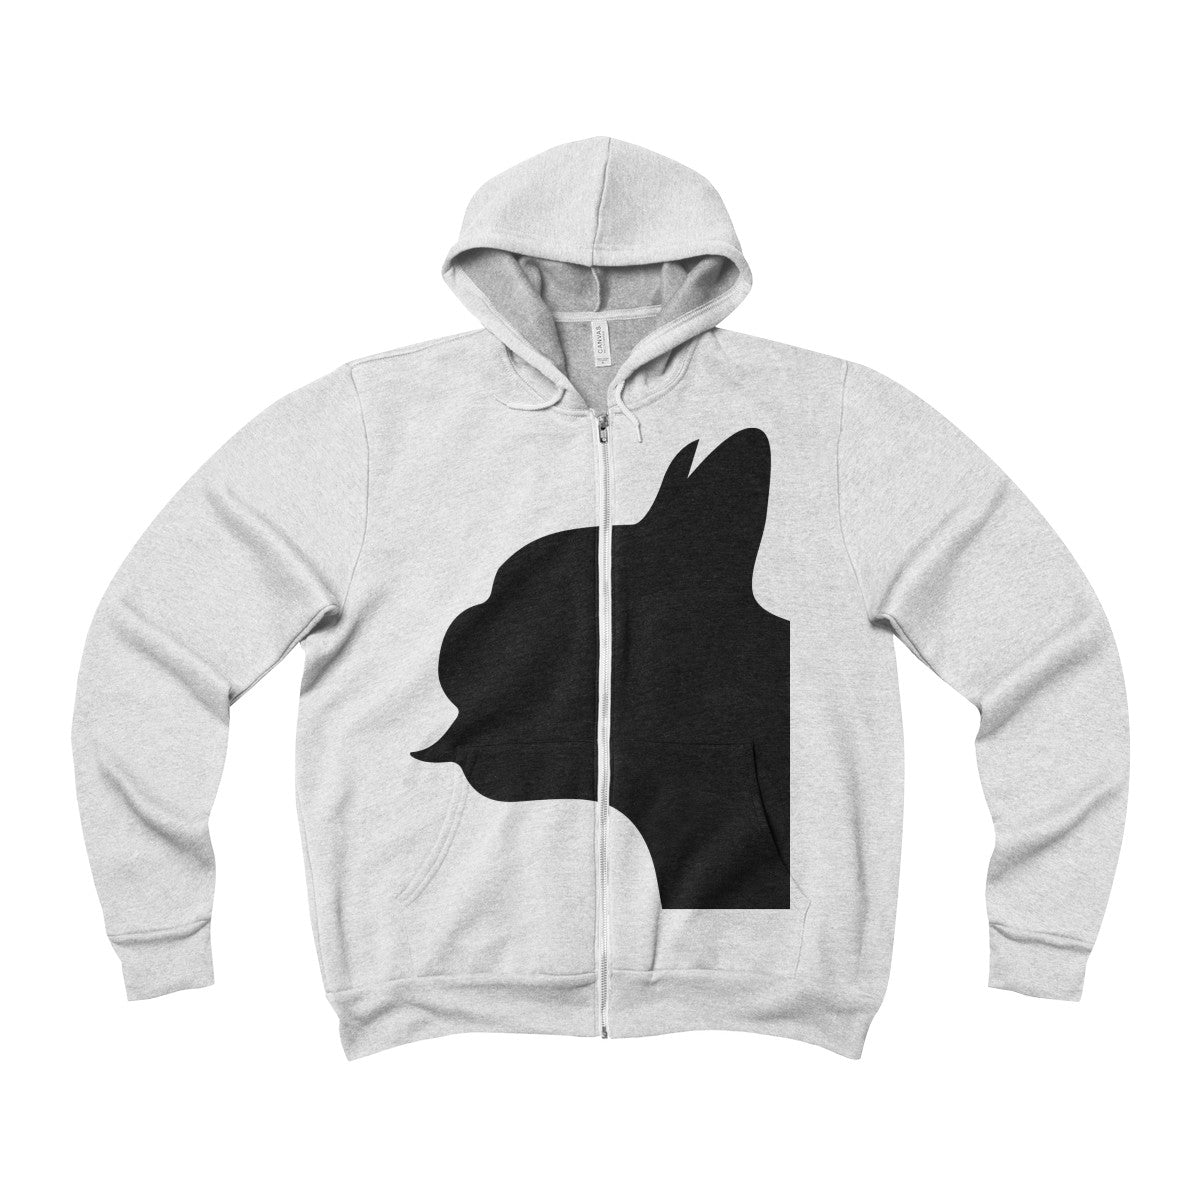 Frenchie Fleece Full-Zip Hoodie - Allthingsfrenchie LLC